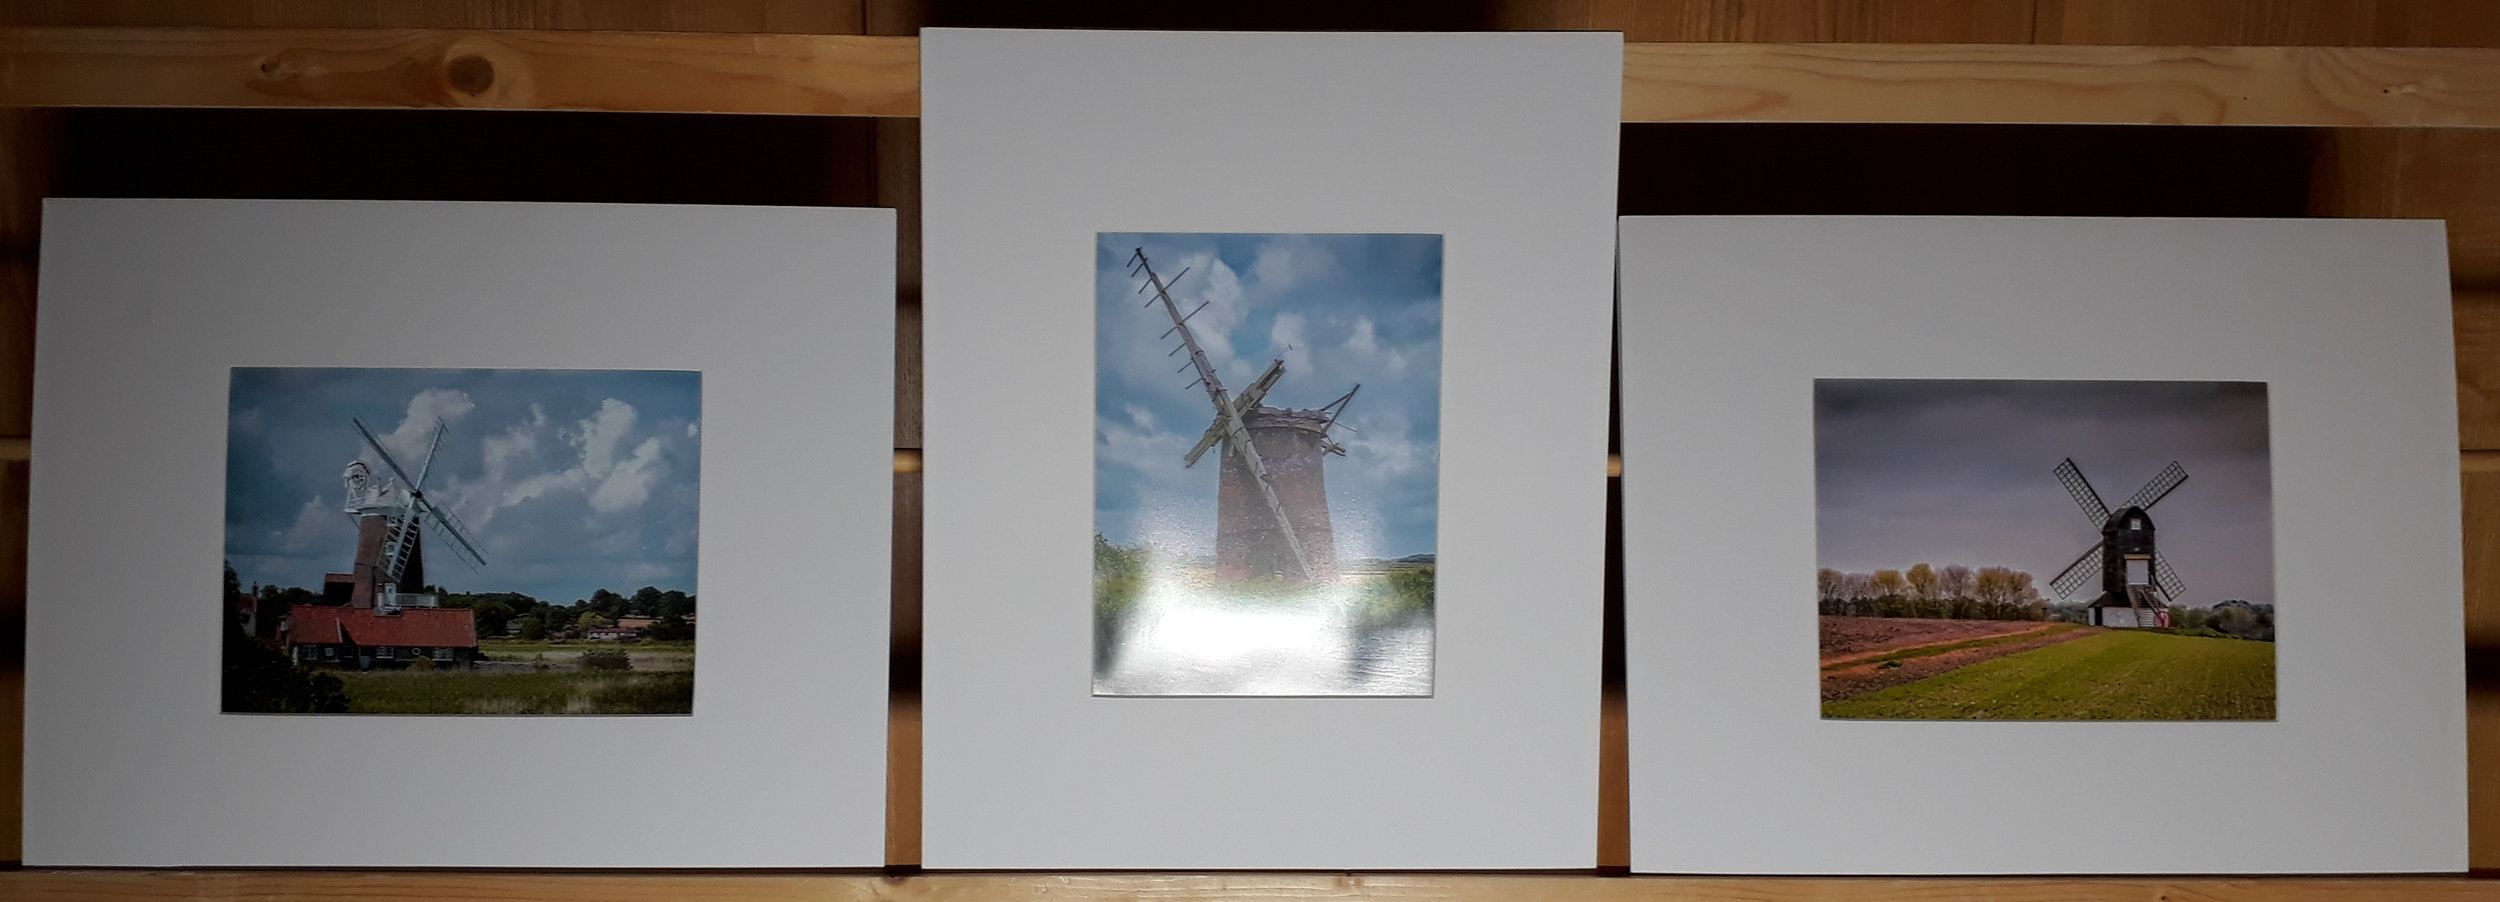 Commended - UK Windmills - Dave Taylor